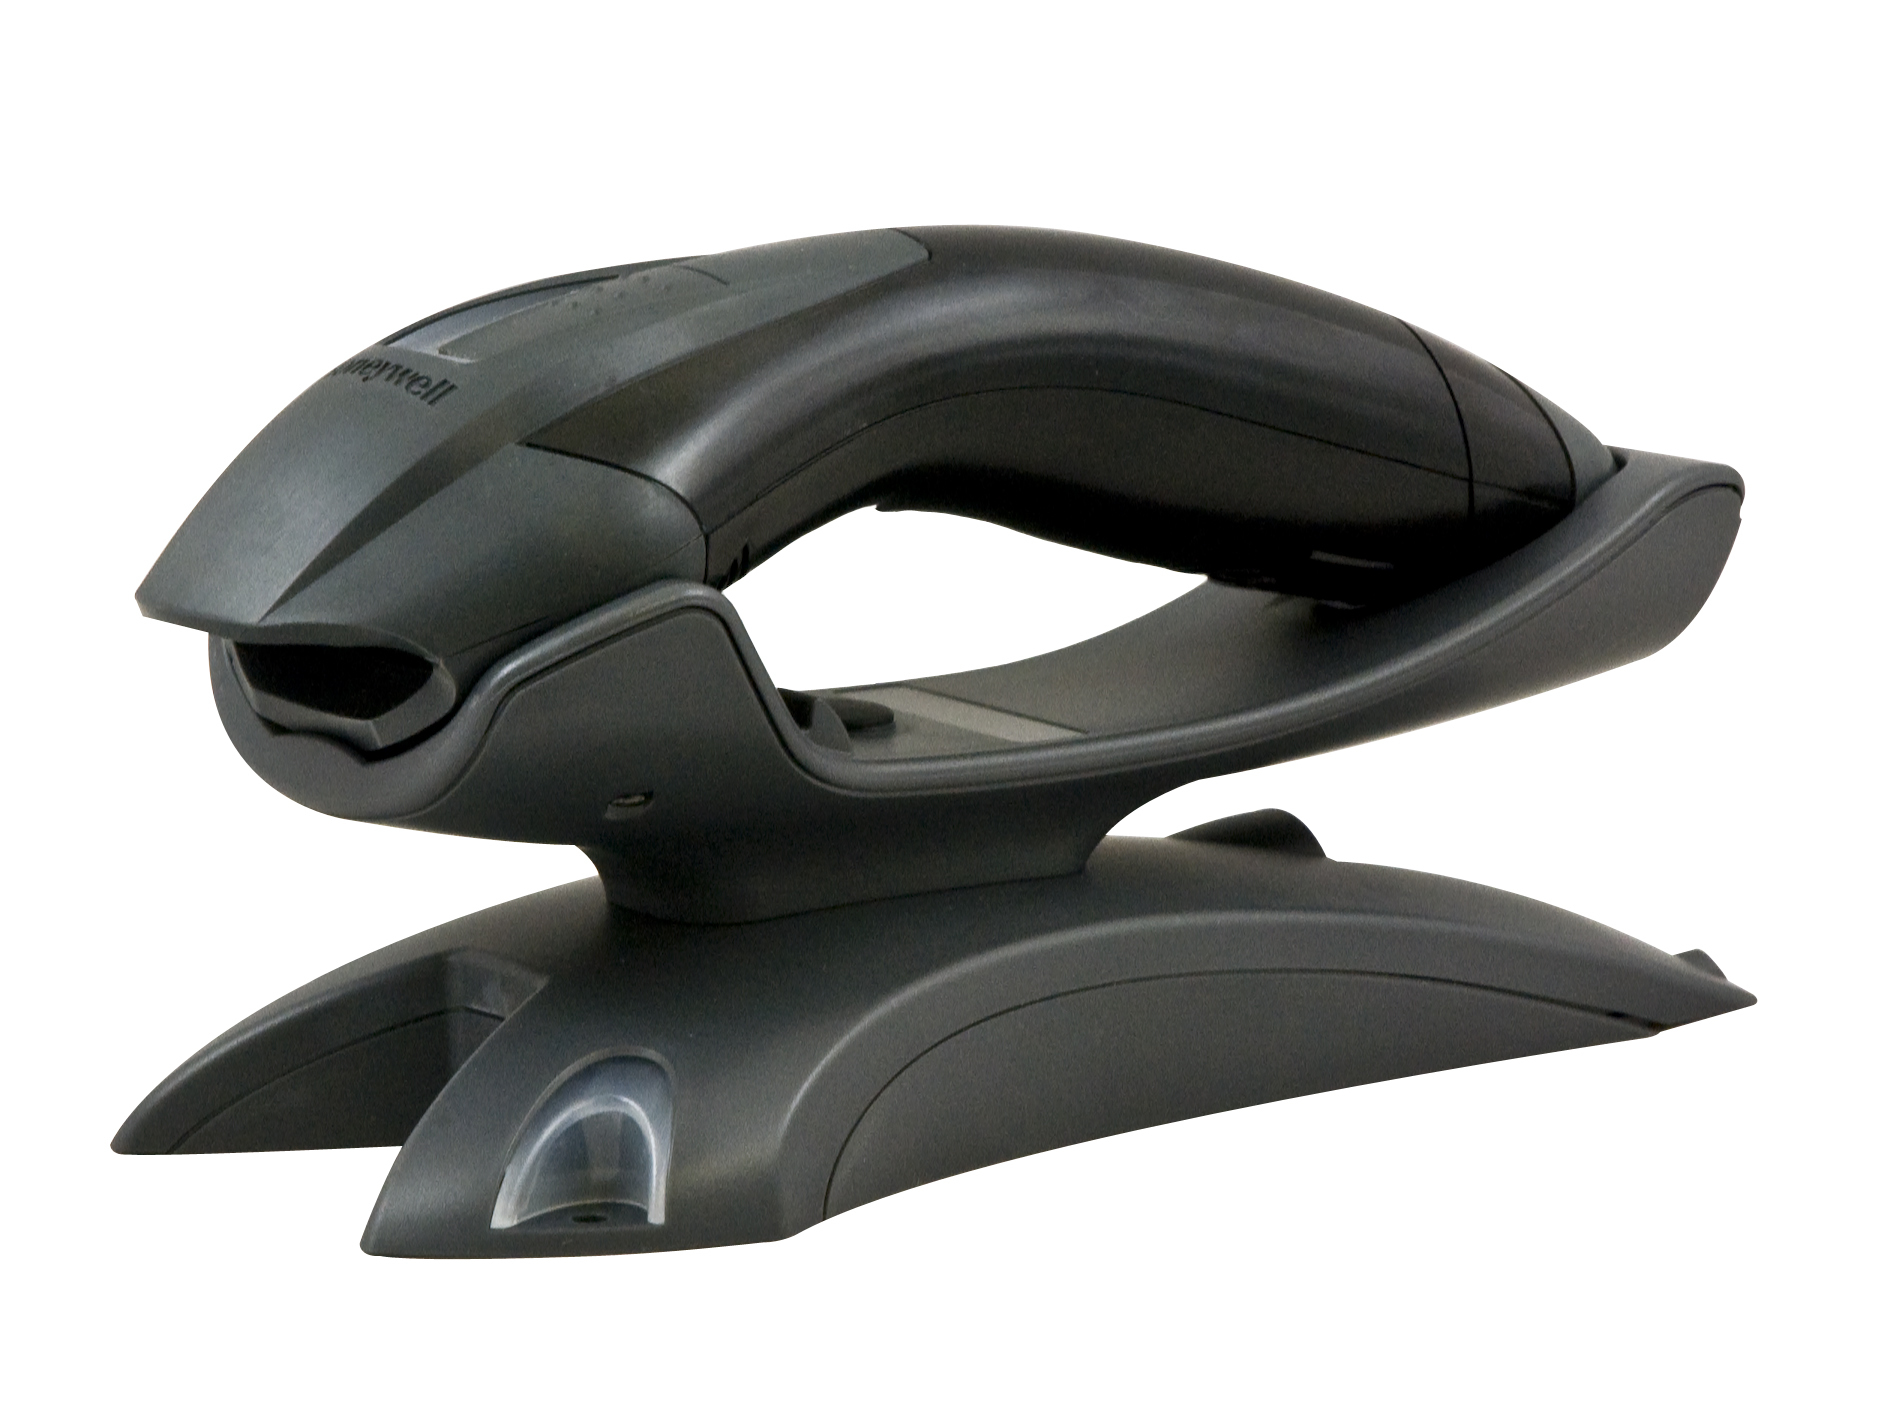 HONEYWELL Voyager 1202g BT. USB schwarz - Barcode-Scanner - Bluetooth